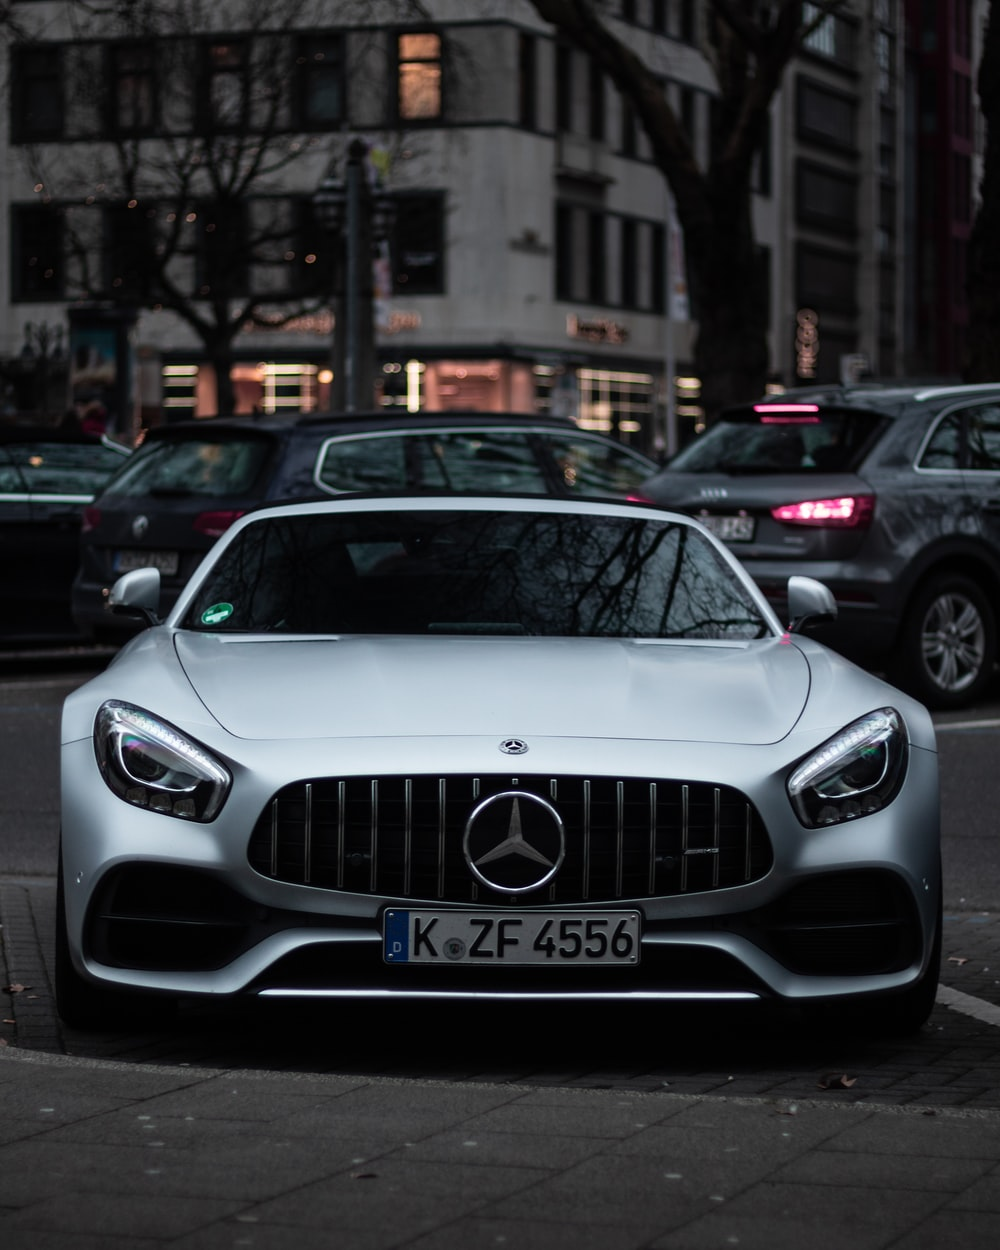 500 Mercedes Pictures Download Free Images On Unsplash